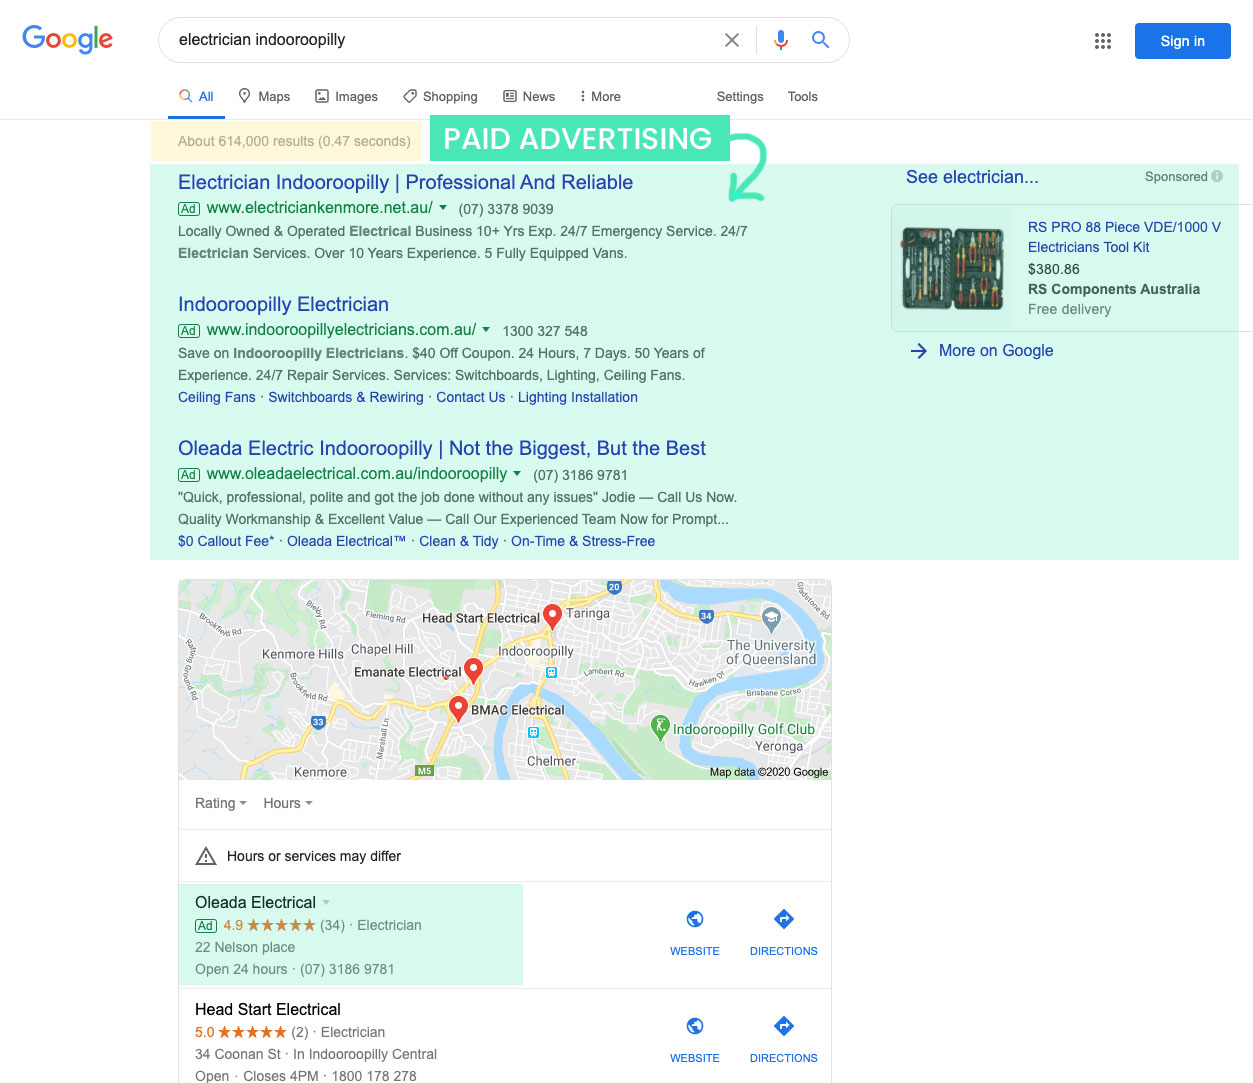 Google search results showing paid ads